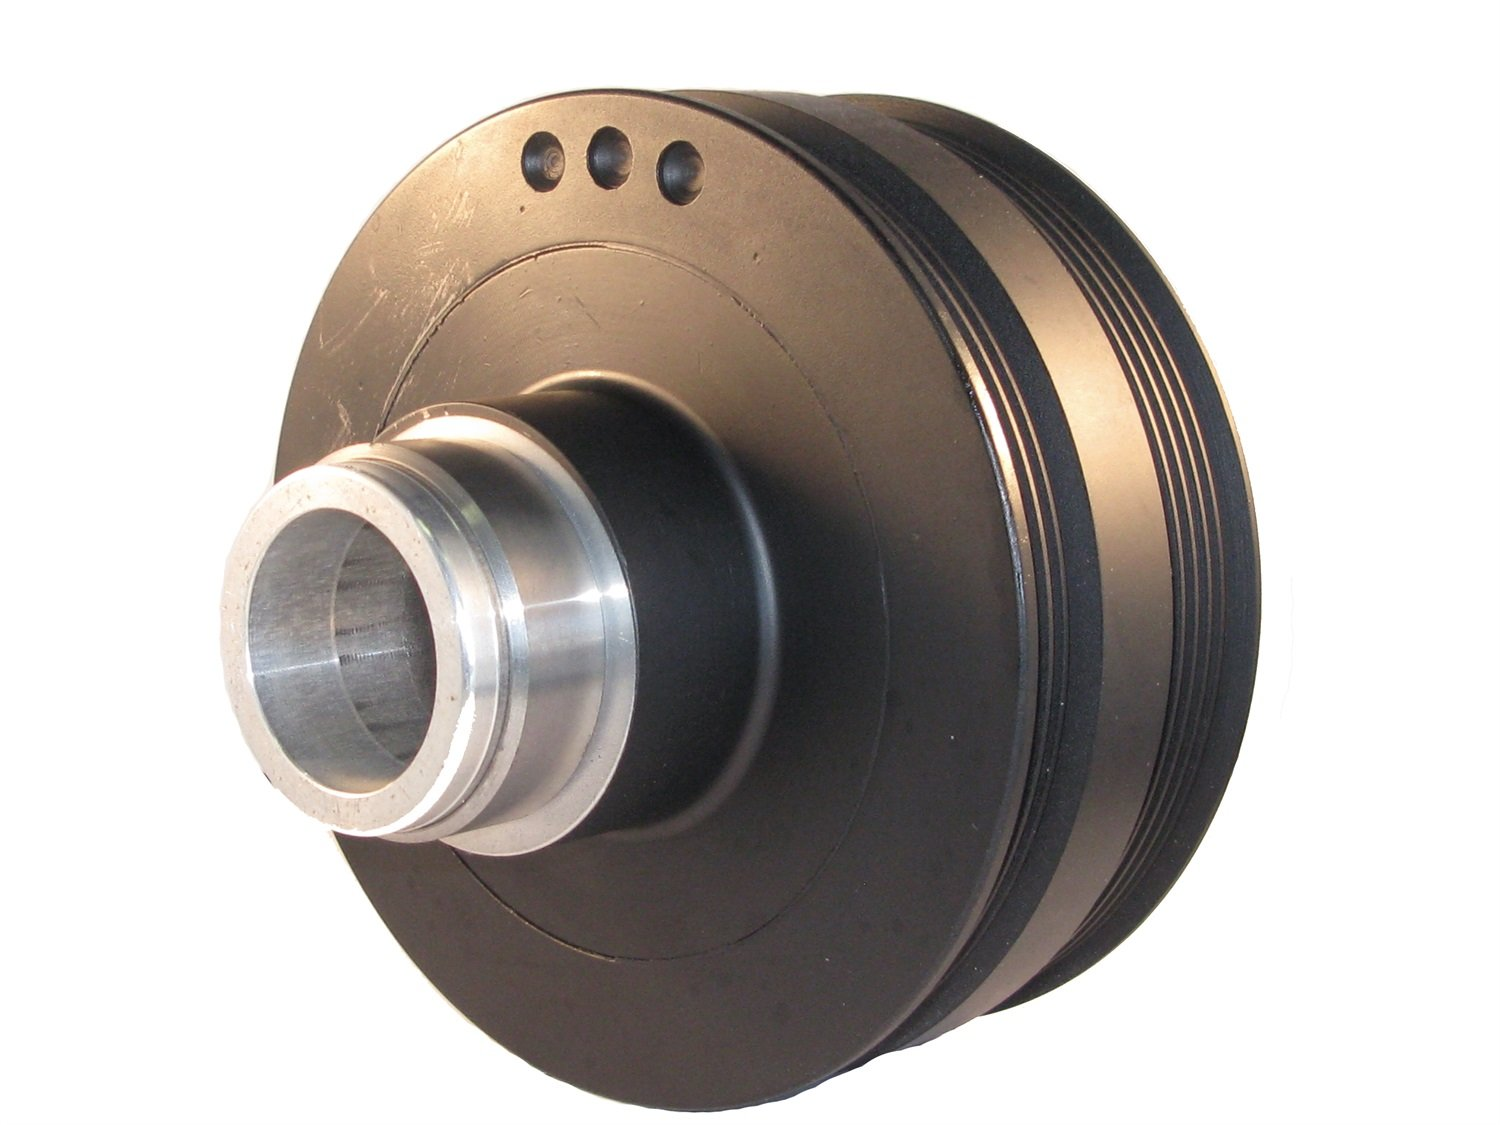 JET 90160 Underdrive Pulley